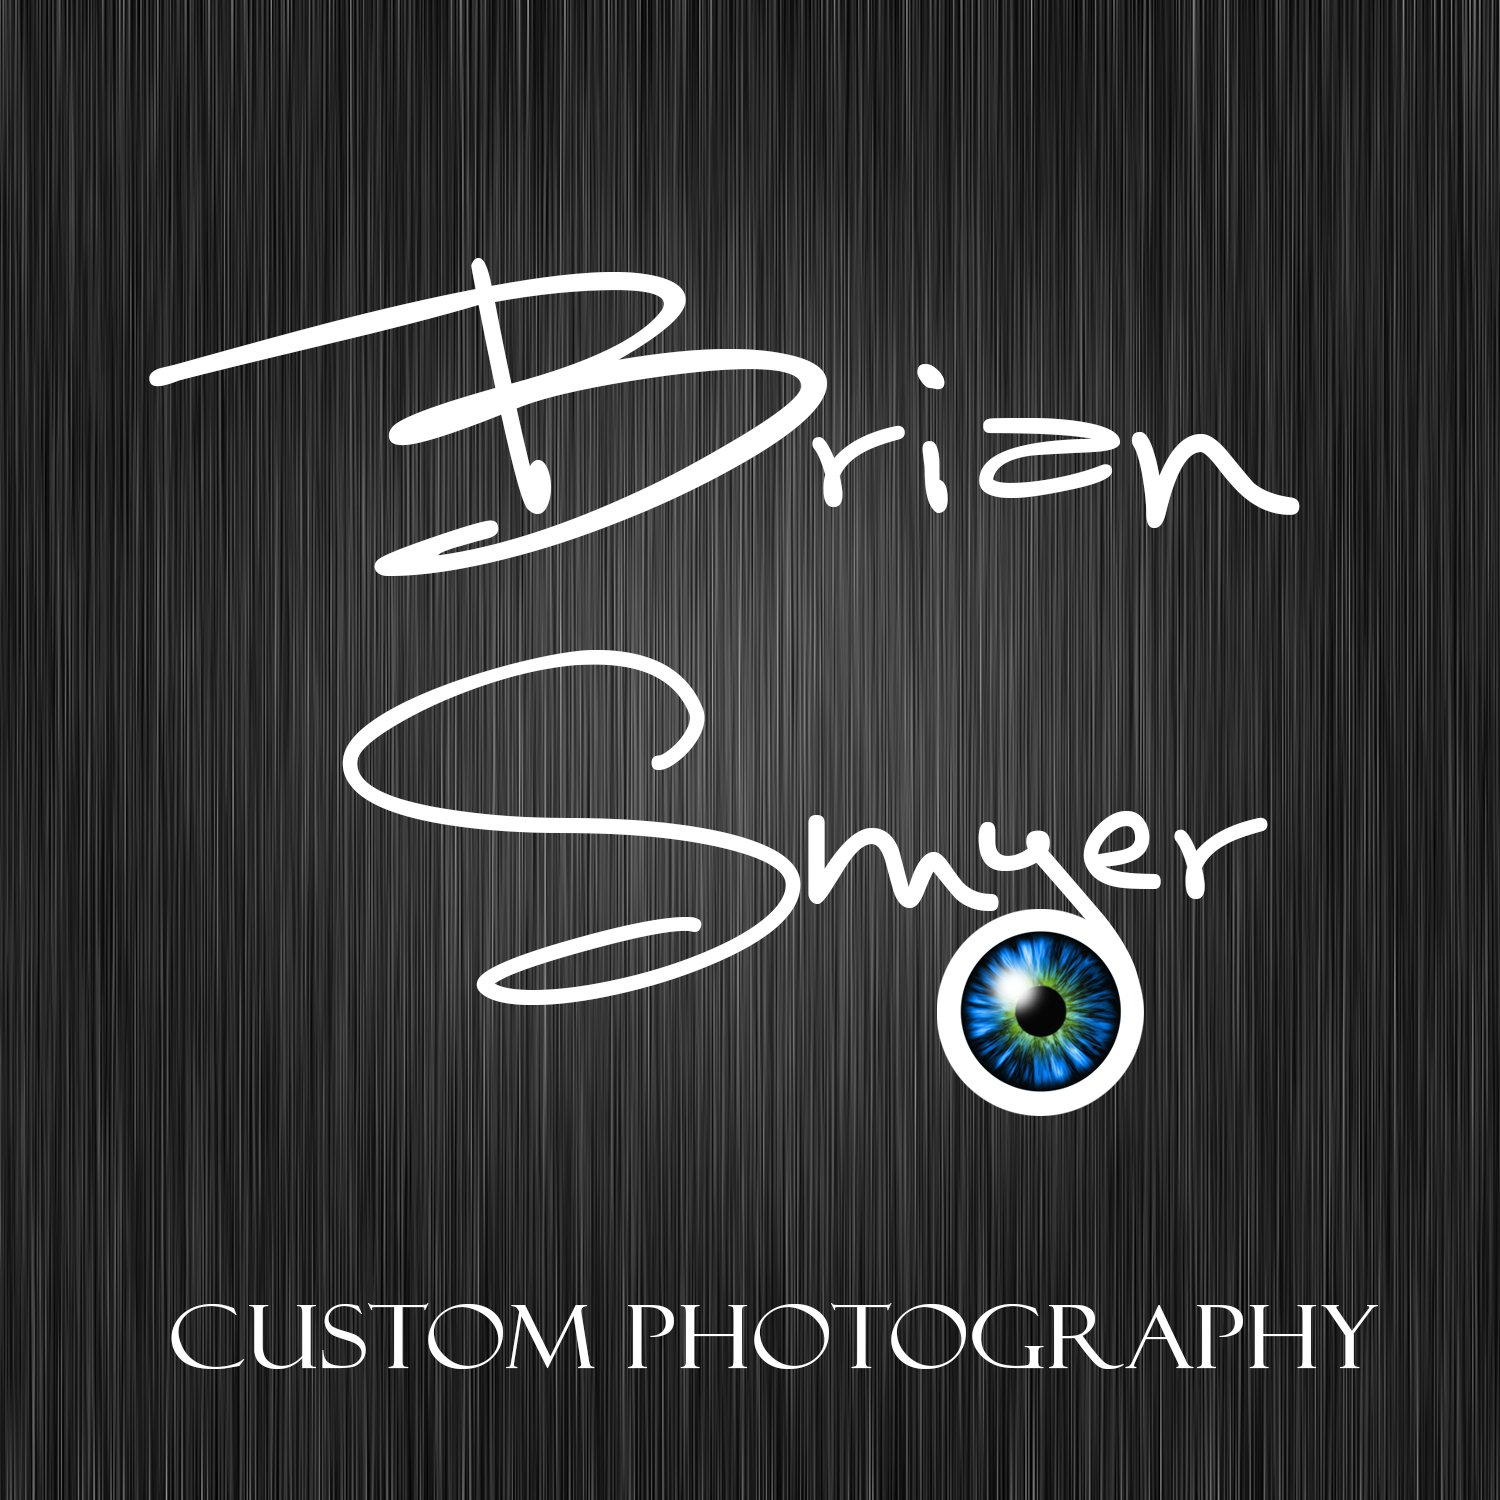 Brian Smyer Custom Photography